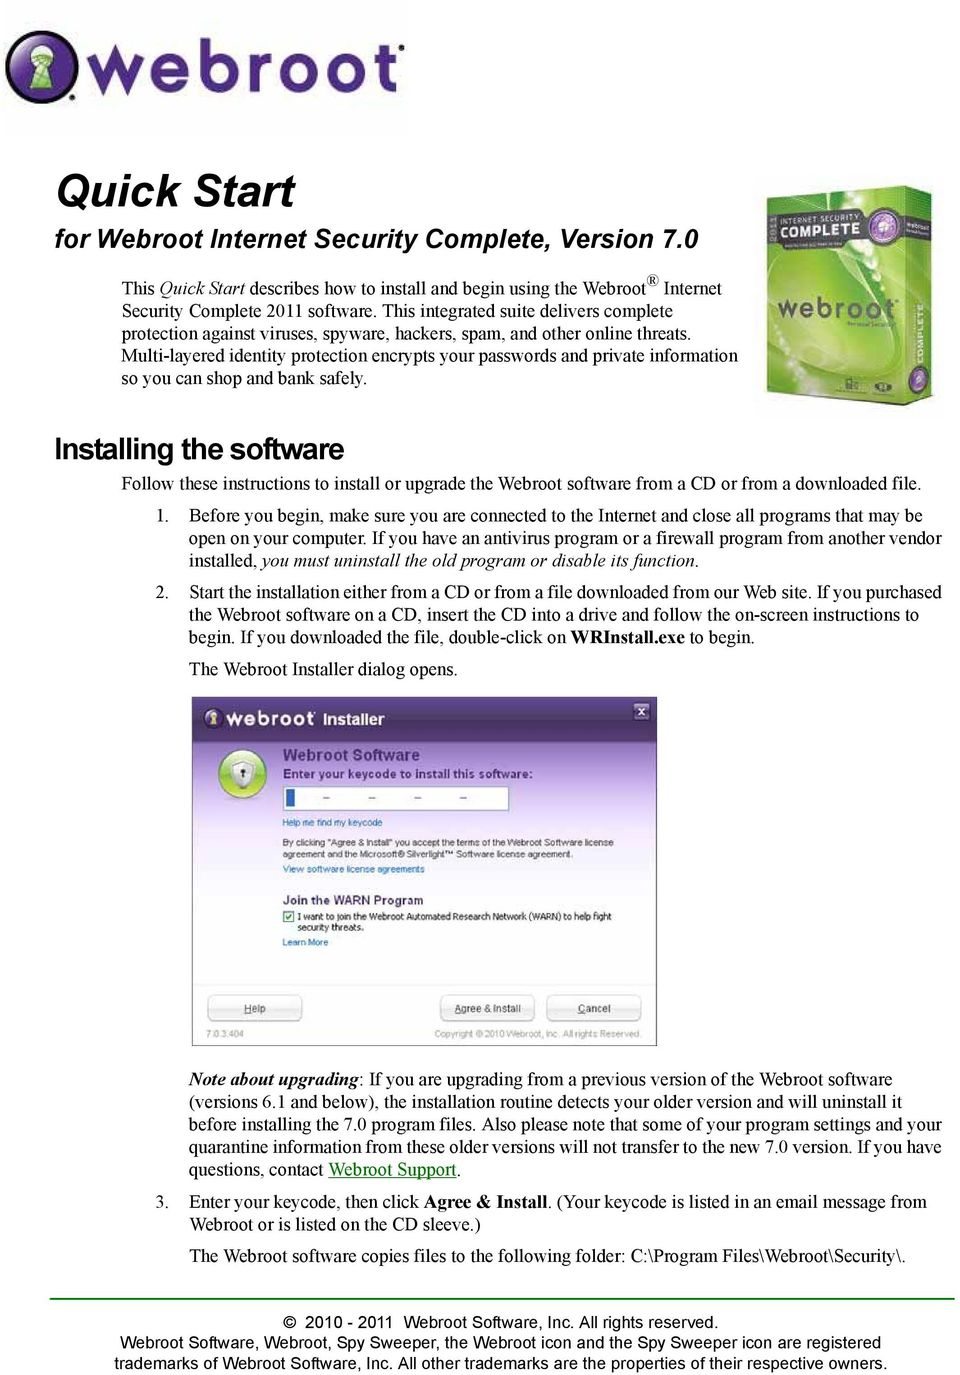 Quick Start  Installing the software  for Webroot Internet